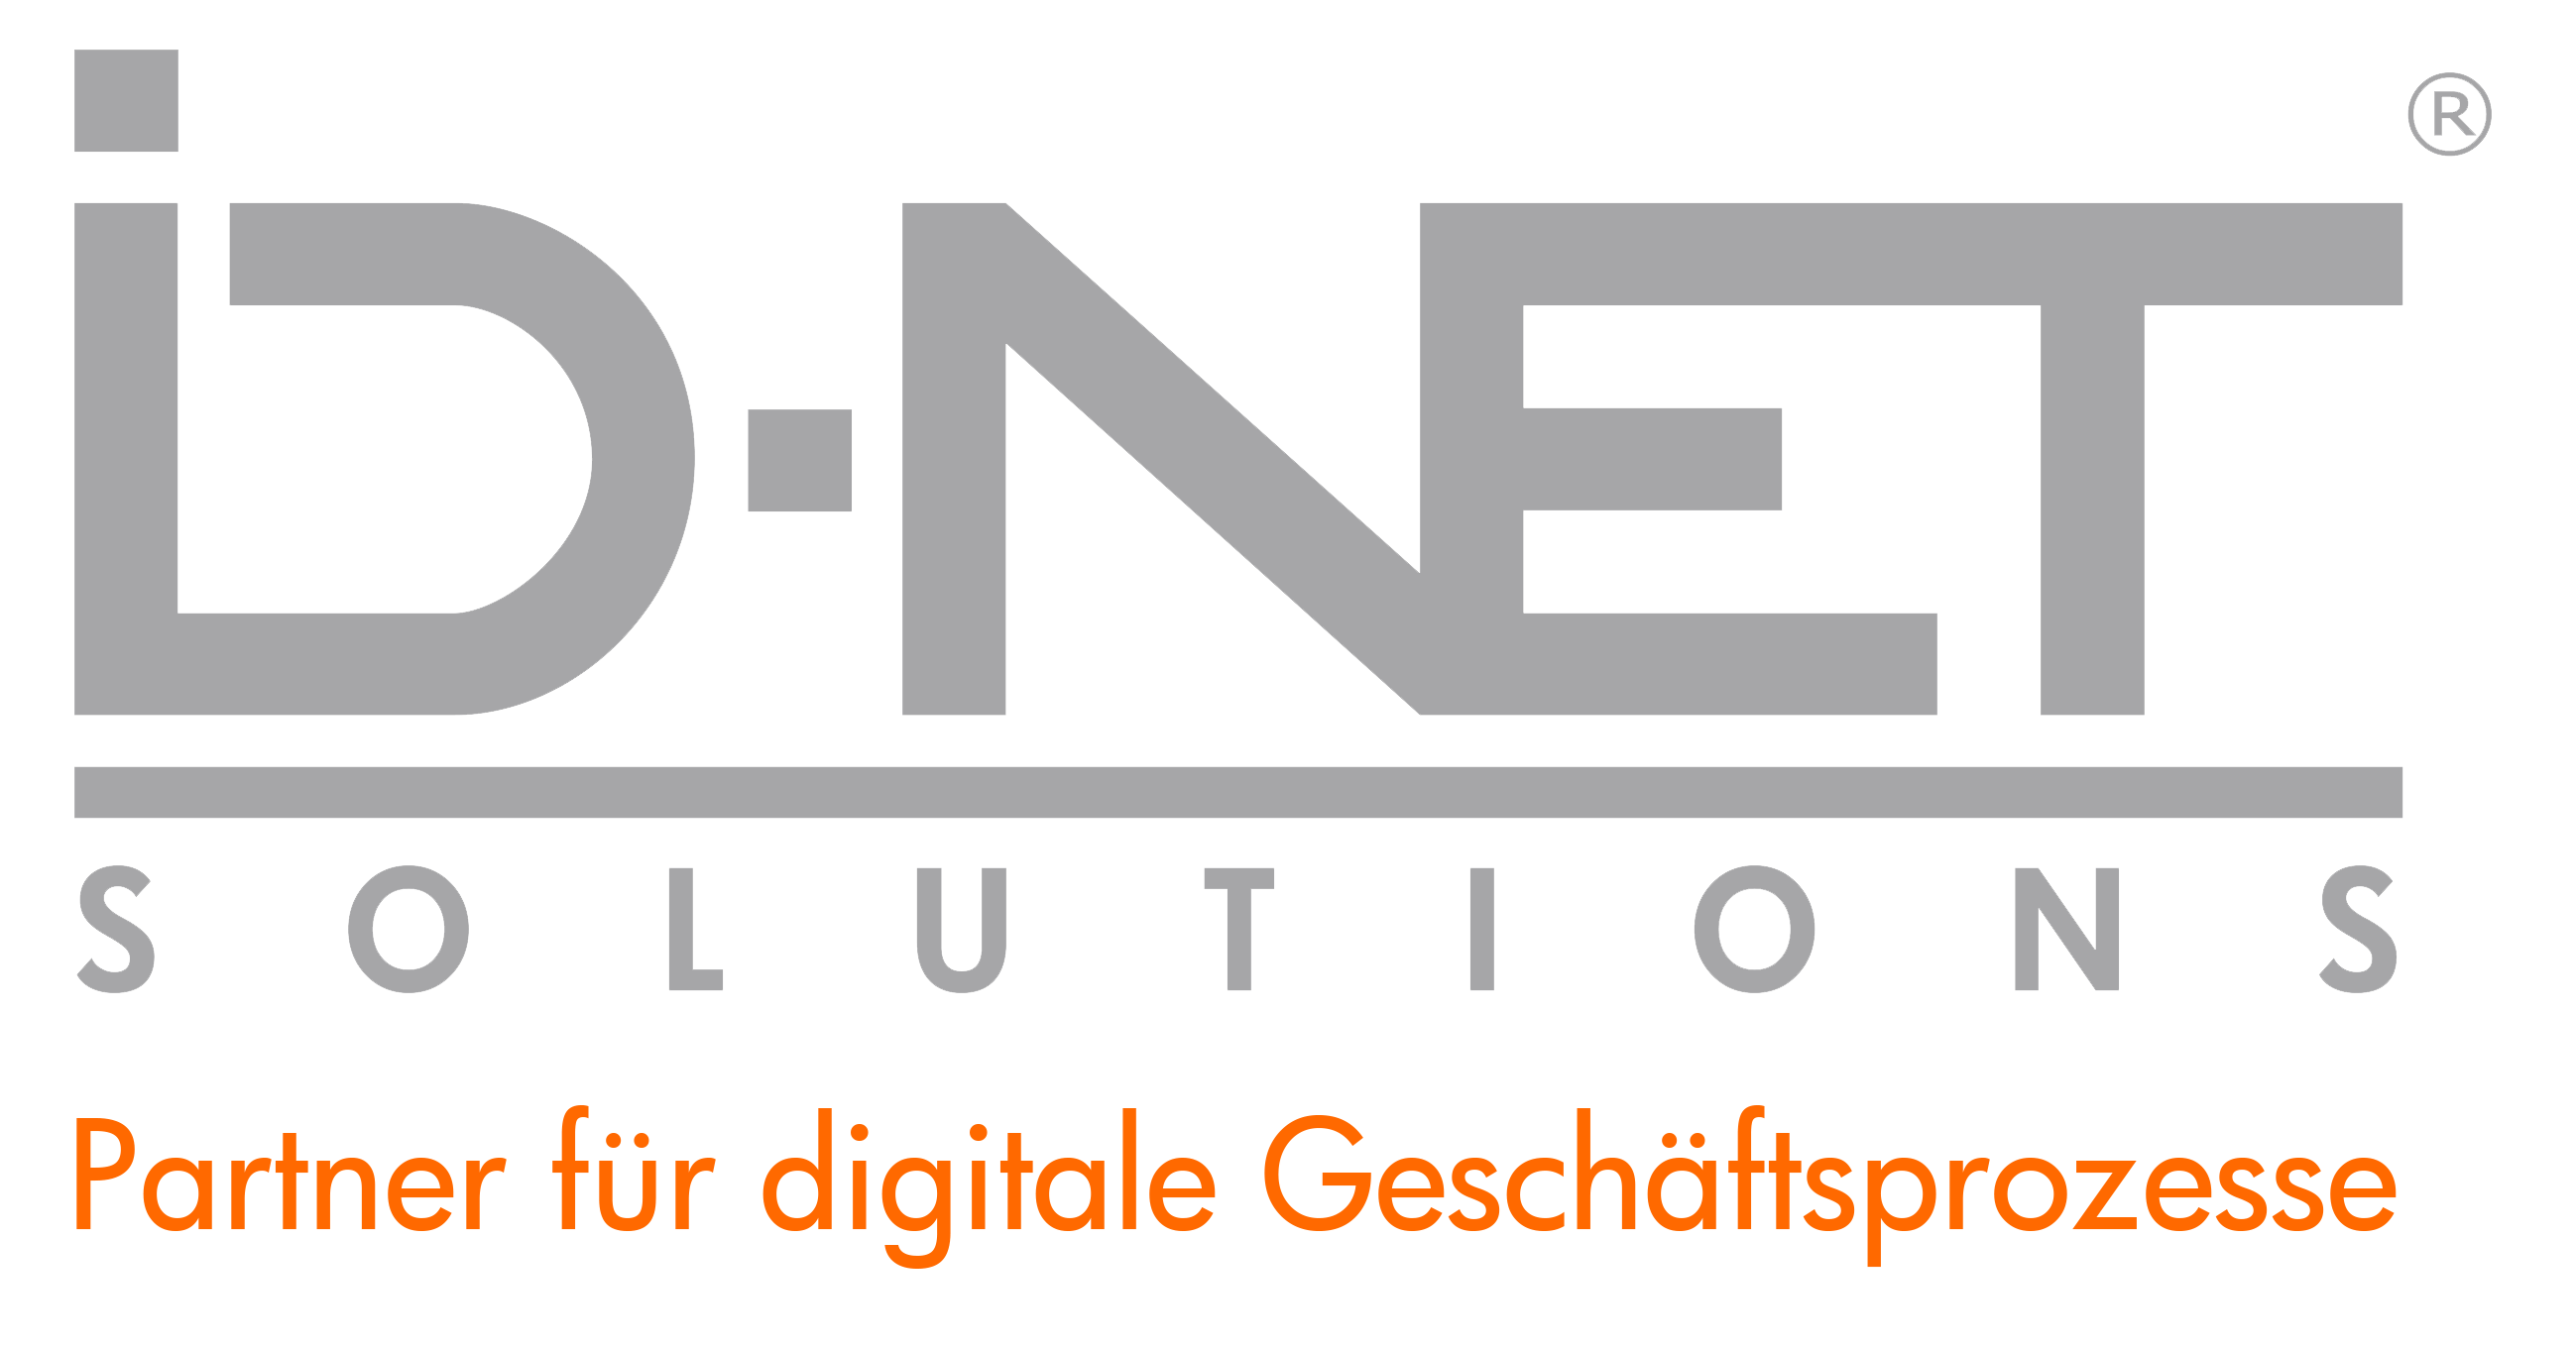 id-netsolutions